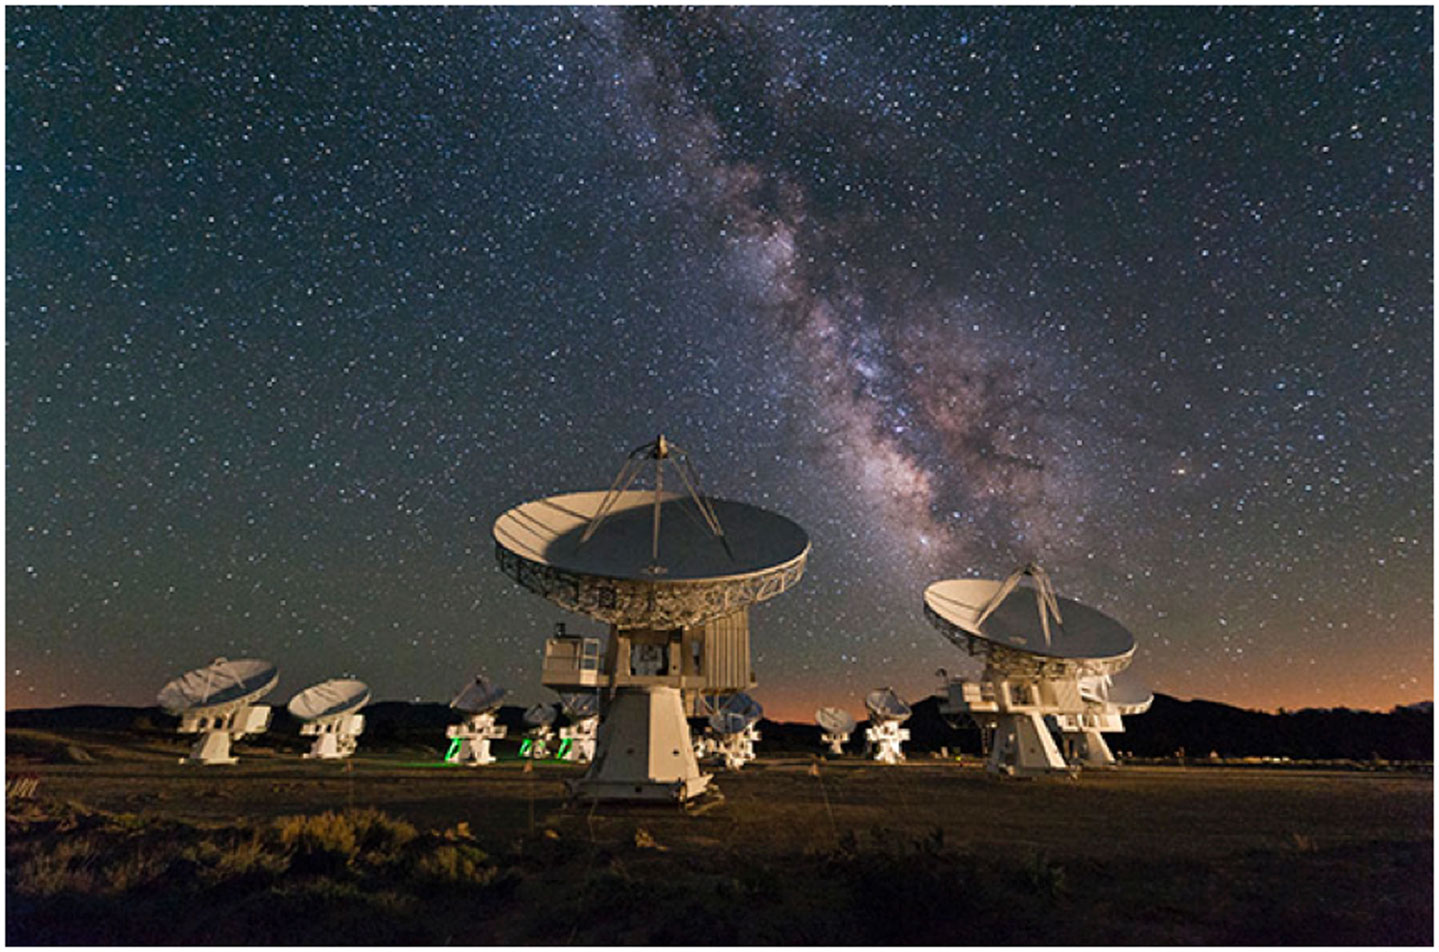 Figure 1 - The Milky Way. Astronomer José Francisco Salgado took this photo of the center of our Galaxy in Cedar Flat, Calif., on May 20, 2010. Below it stands the Combined Array for Research in Millimeter-wave Astronomy instrument made up of 23 radio telescopes.